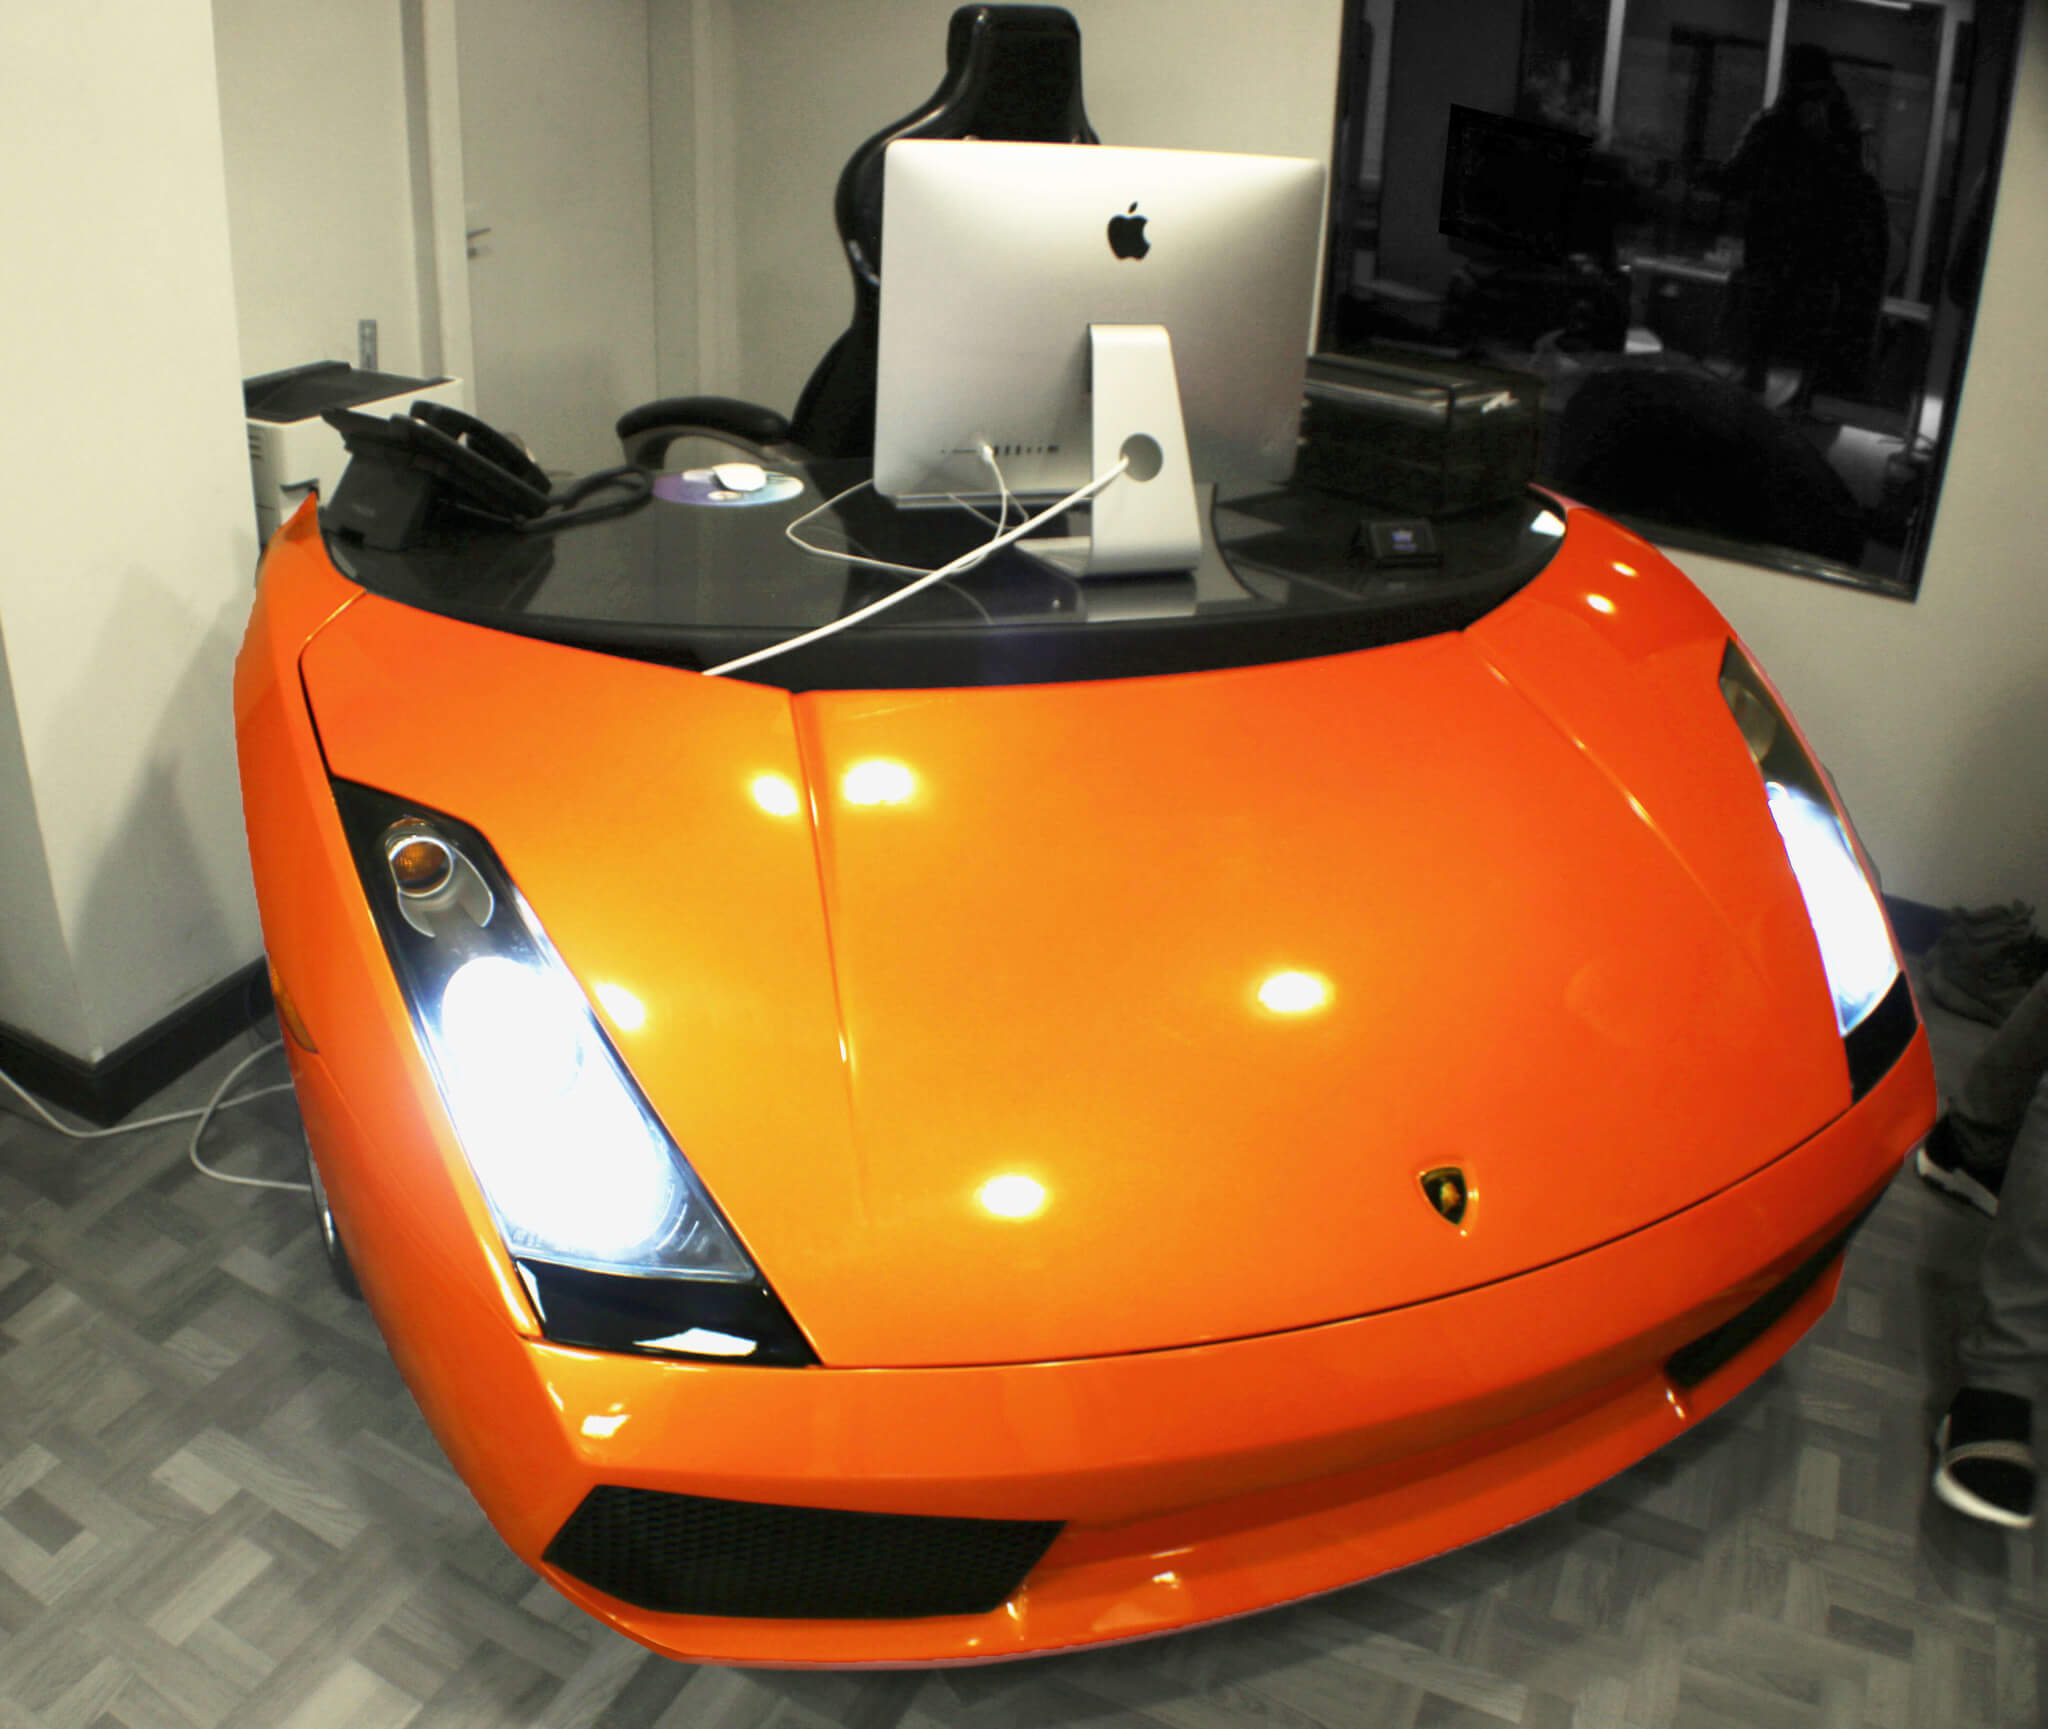 https://www.enkahnz.co.uk/wp-content/uploads/2019/07/nav-lambo-desk1.jpg